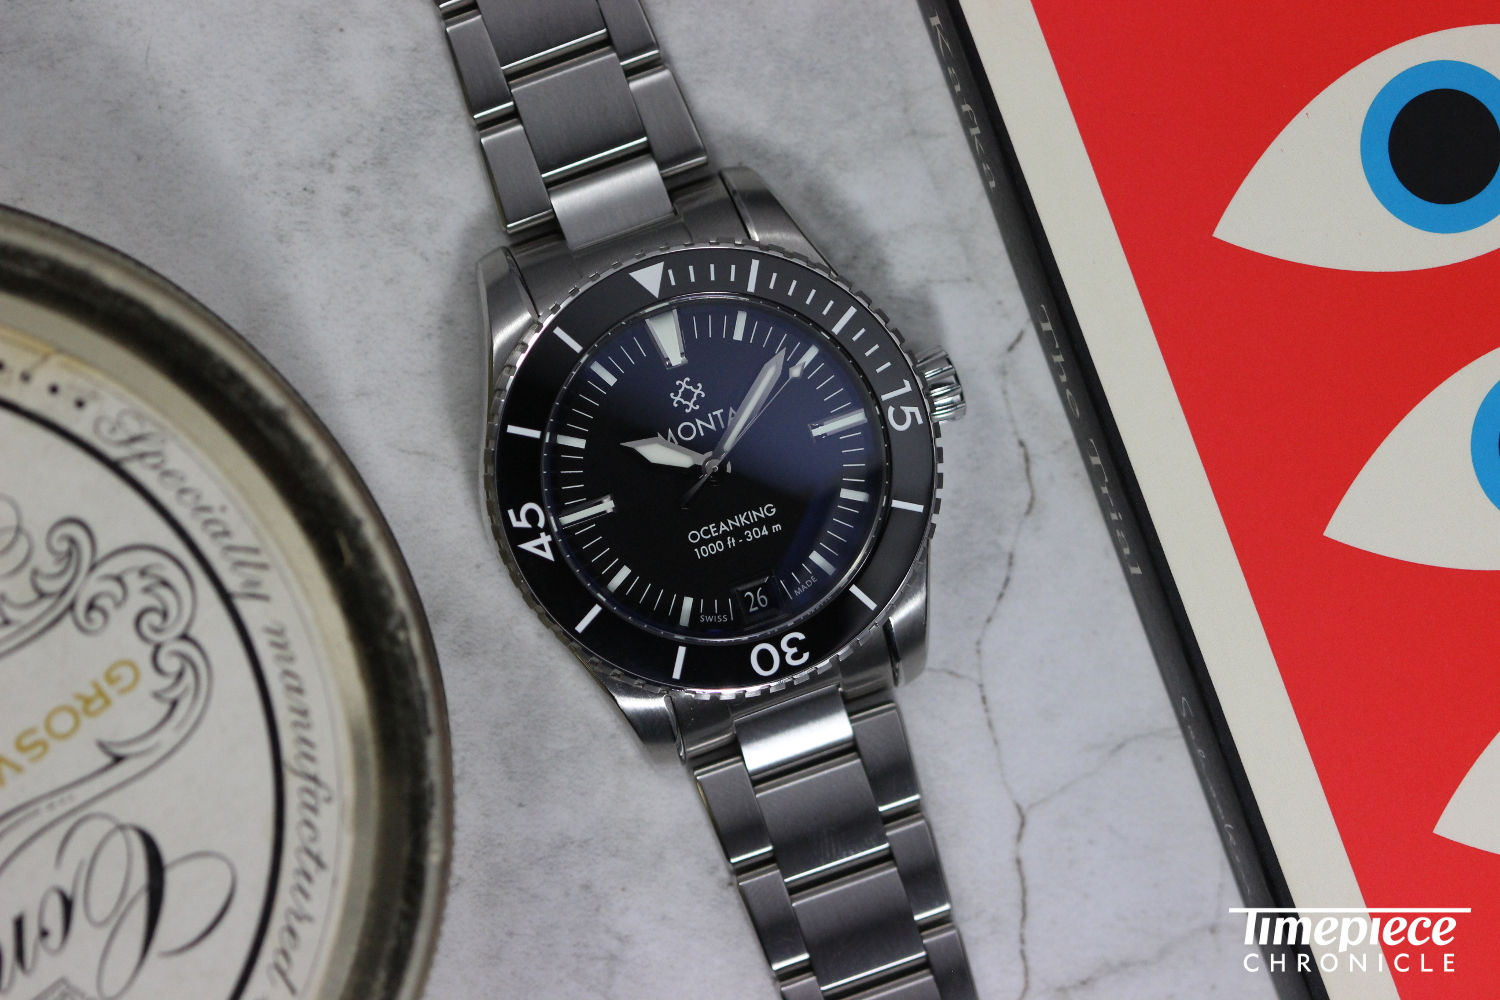 Monta didn't have a catalog to fall back on when designing a watch and instead were inspired by the ethos and culture of dive watches from the 1950s and 1960s.